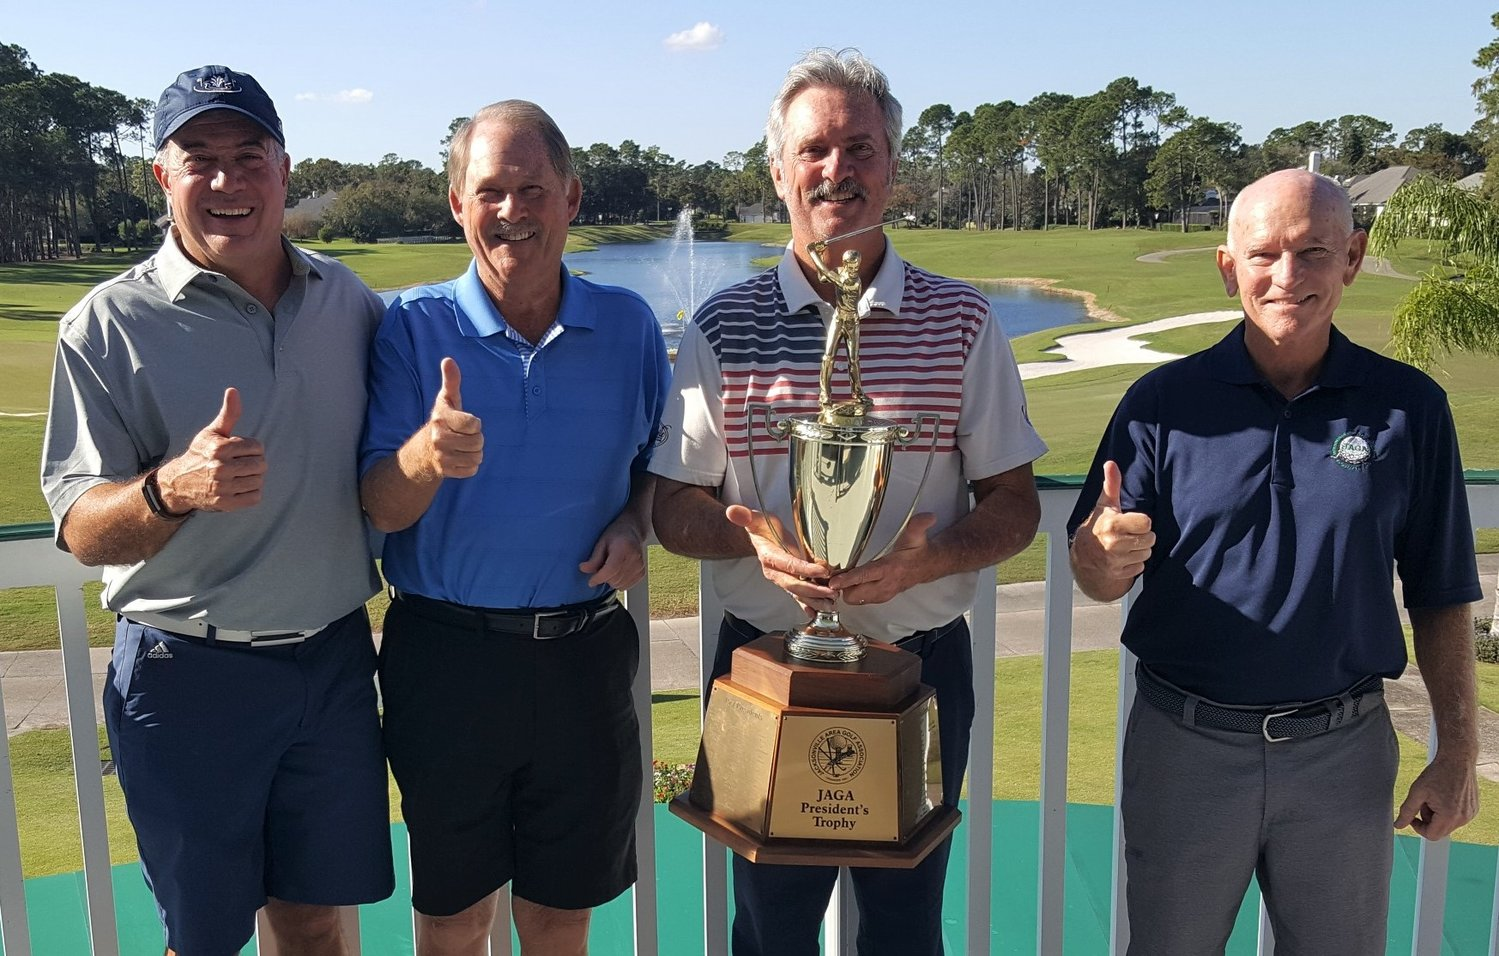 WINNING TEAM: Jacksonville Golf & Country Club team members Fermin Mendez (from left), Bill Devine, pro Ray Barr and Skip Lunsford